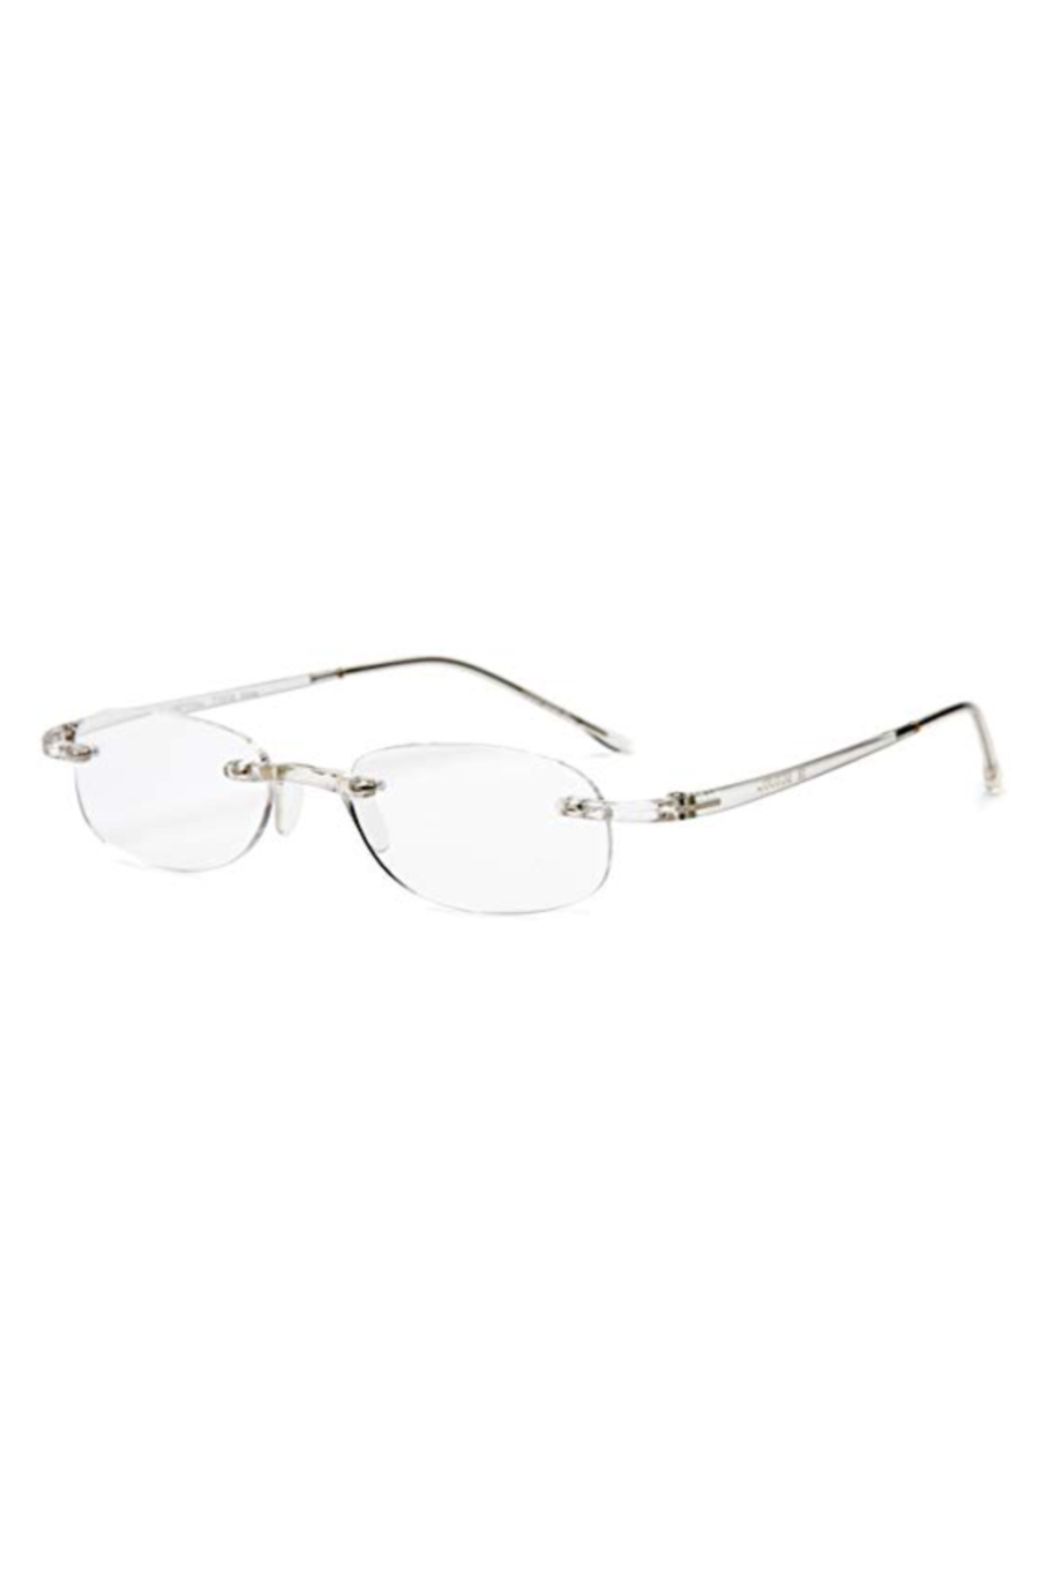 scojo CRYSTAL GELS +1.25 SCOJO READING GLASSES - Main Image